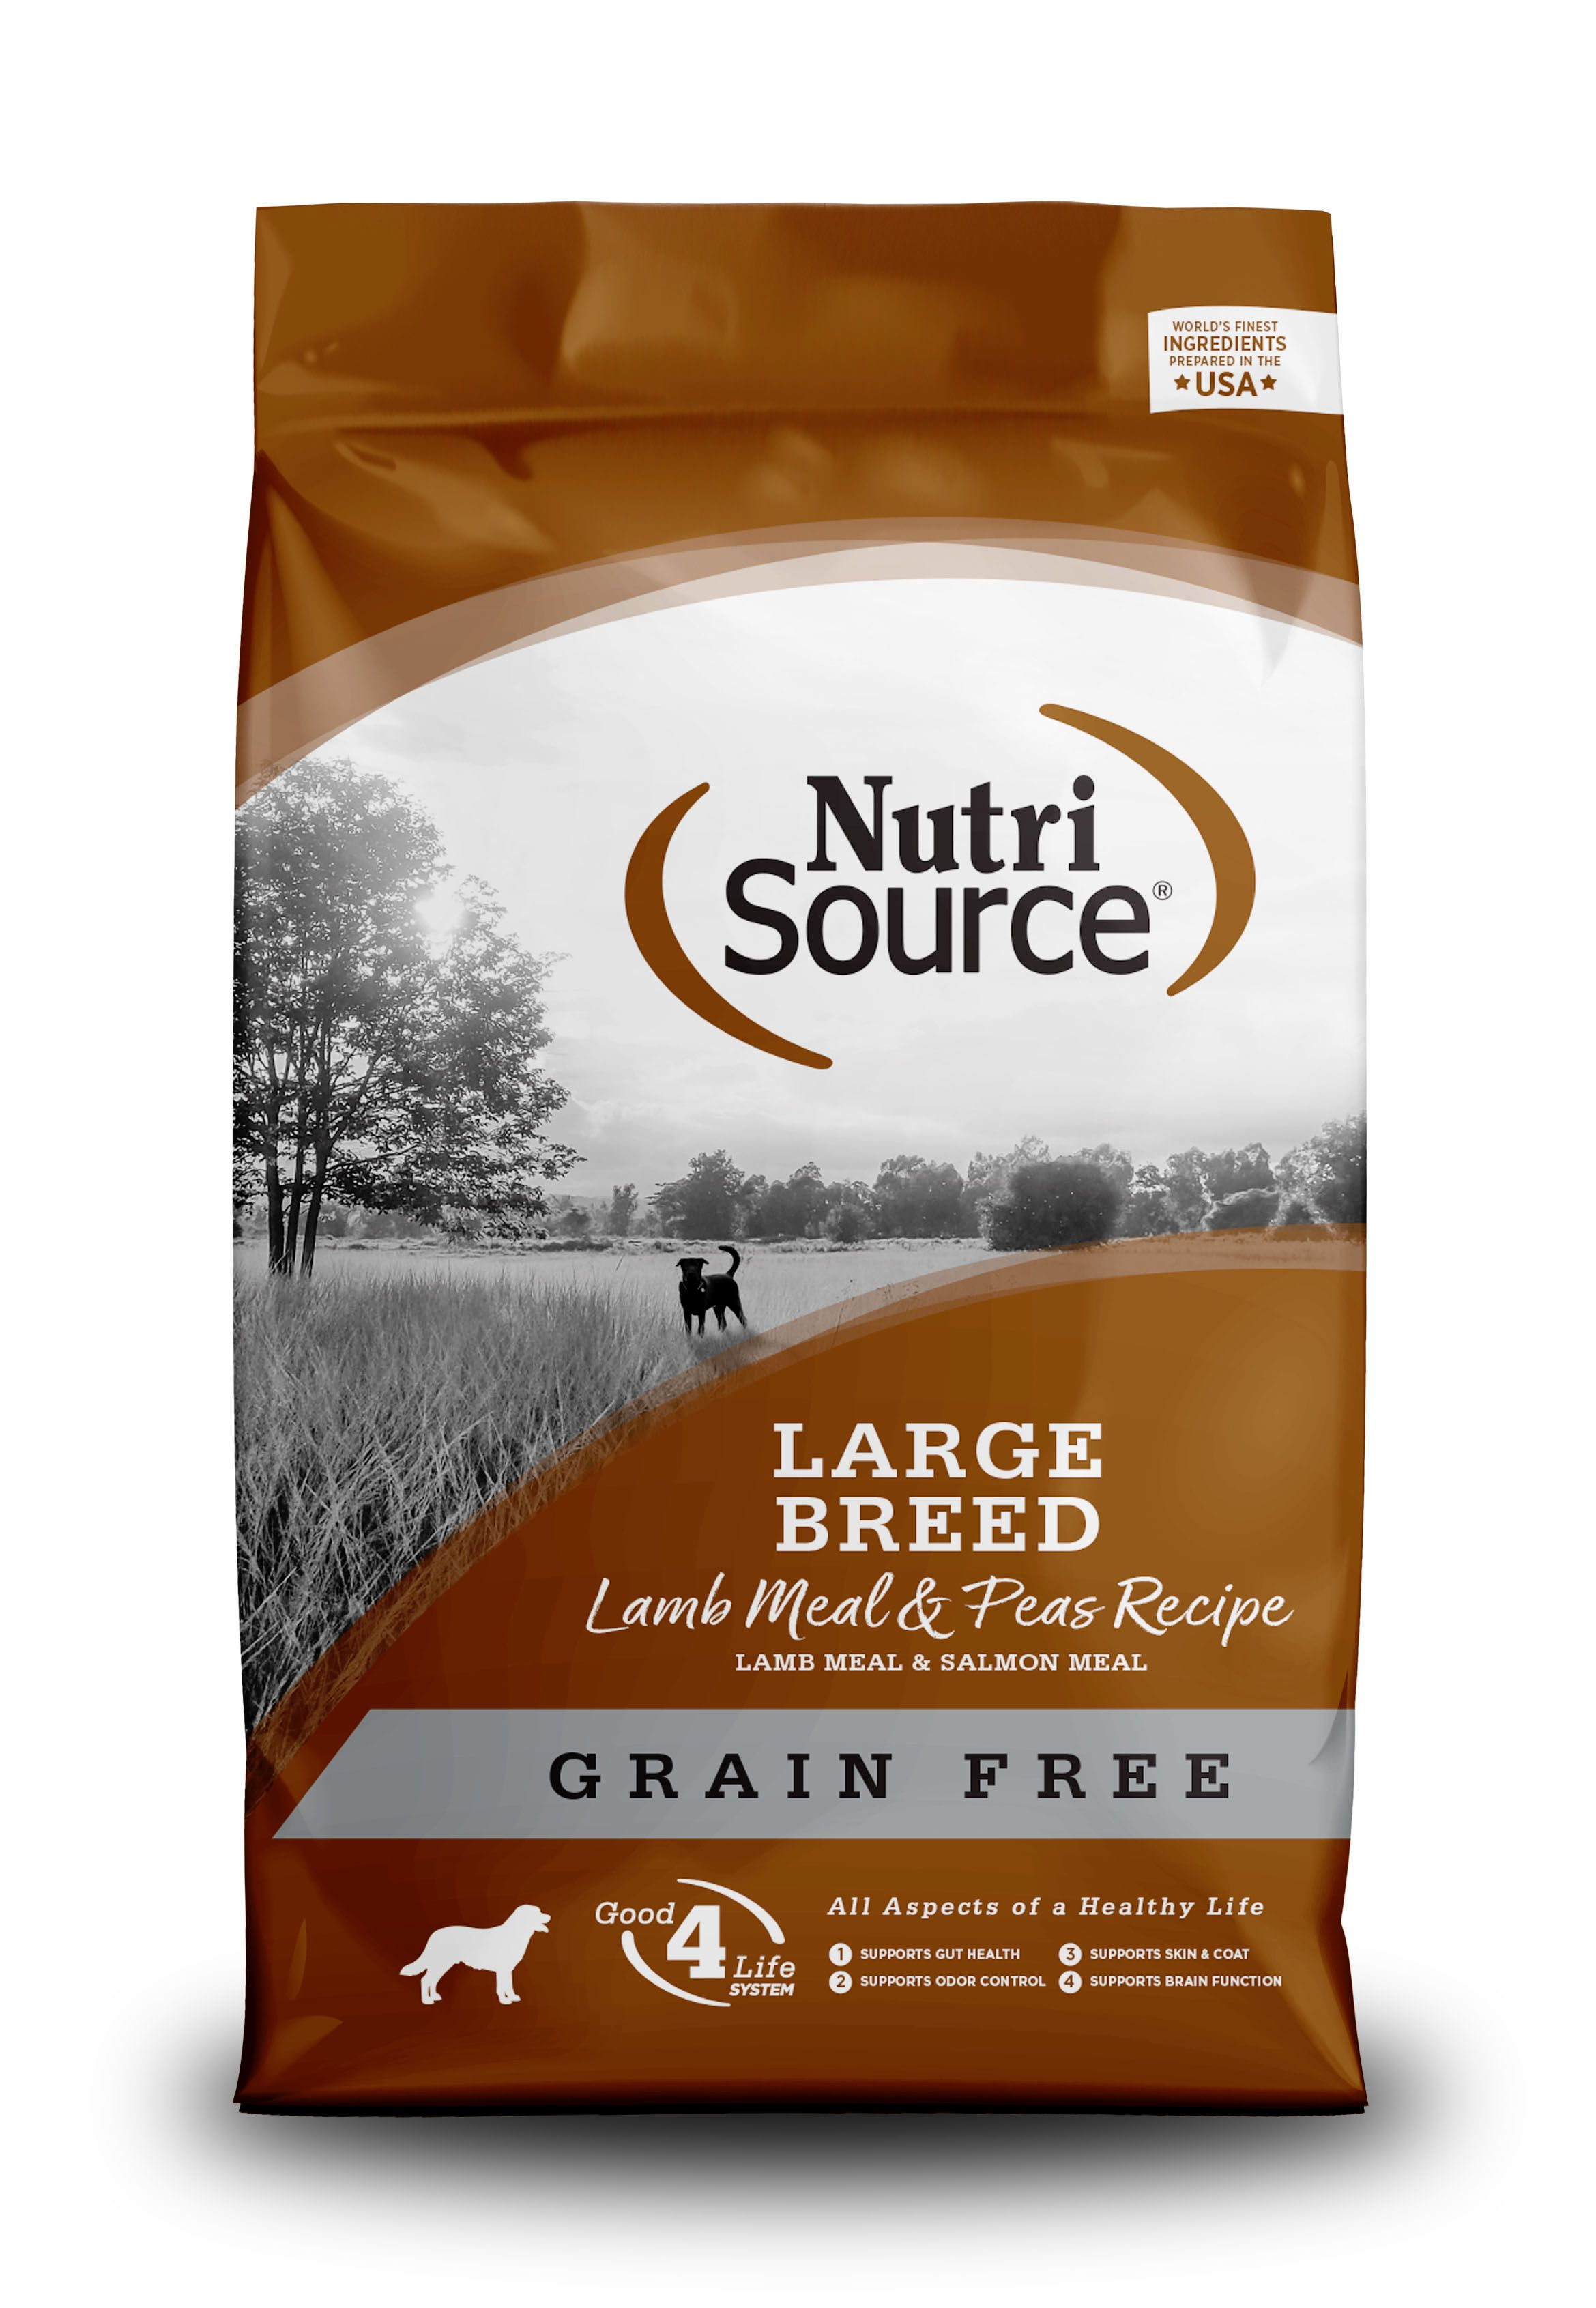 NutriSource Grain Free Large Breed Lamb Dry Dog Food Image